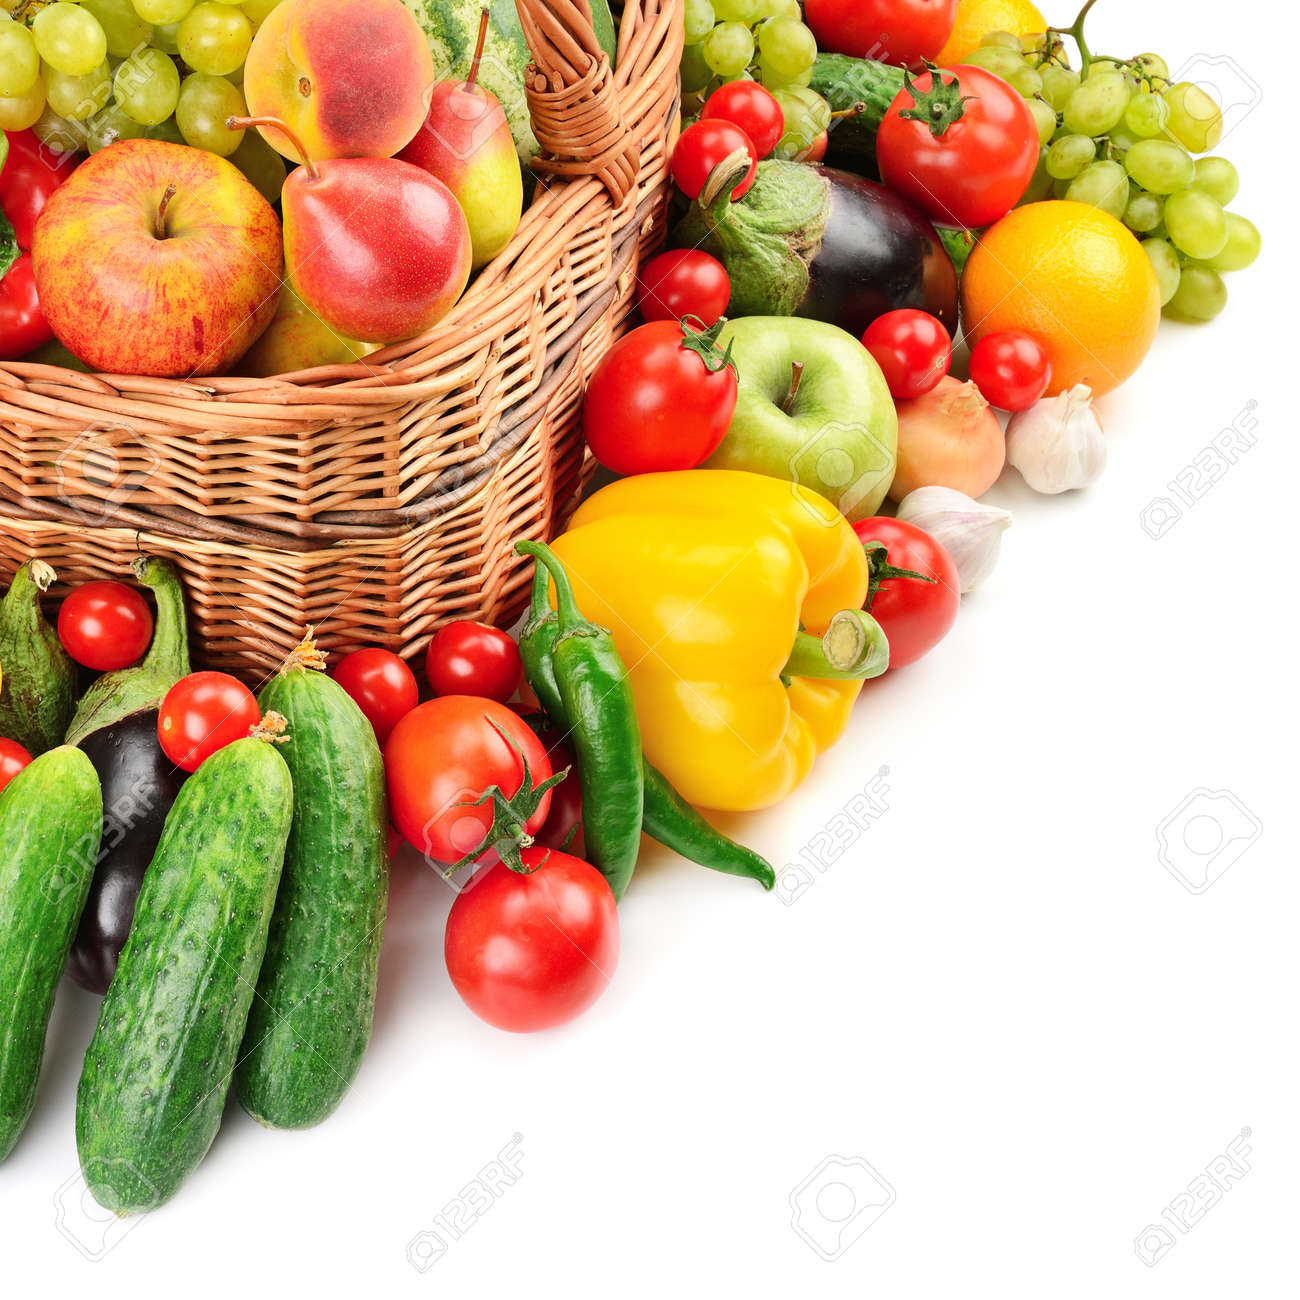 fruit and vegetable in basket isolated on white background Stock Photo - 19408152